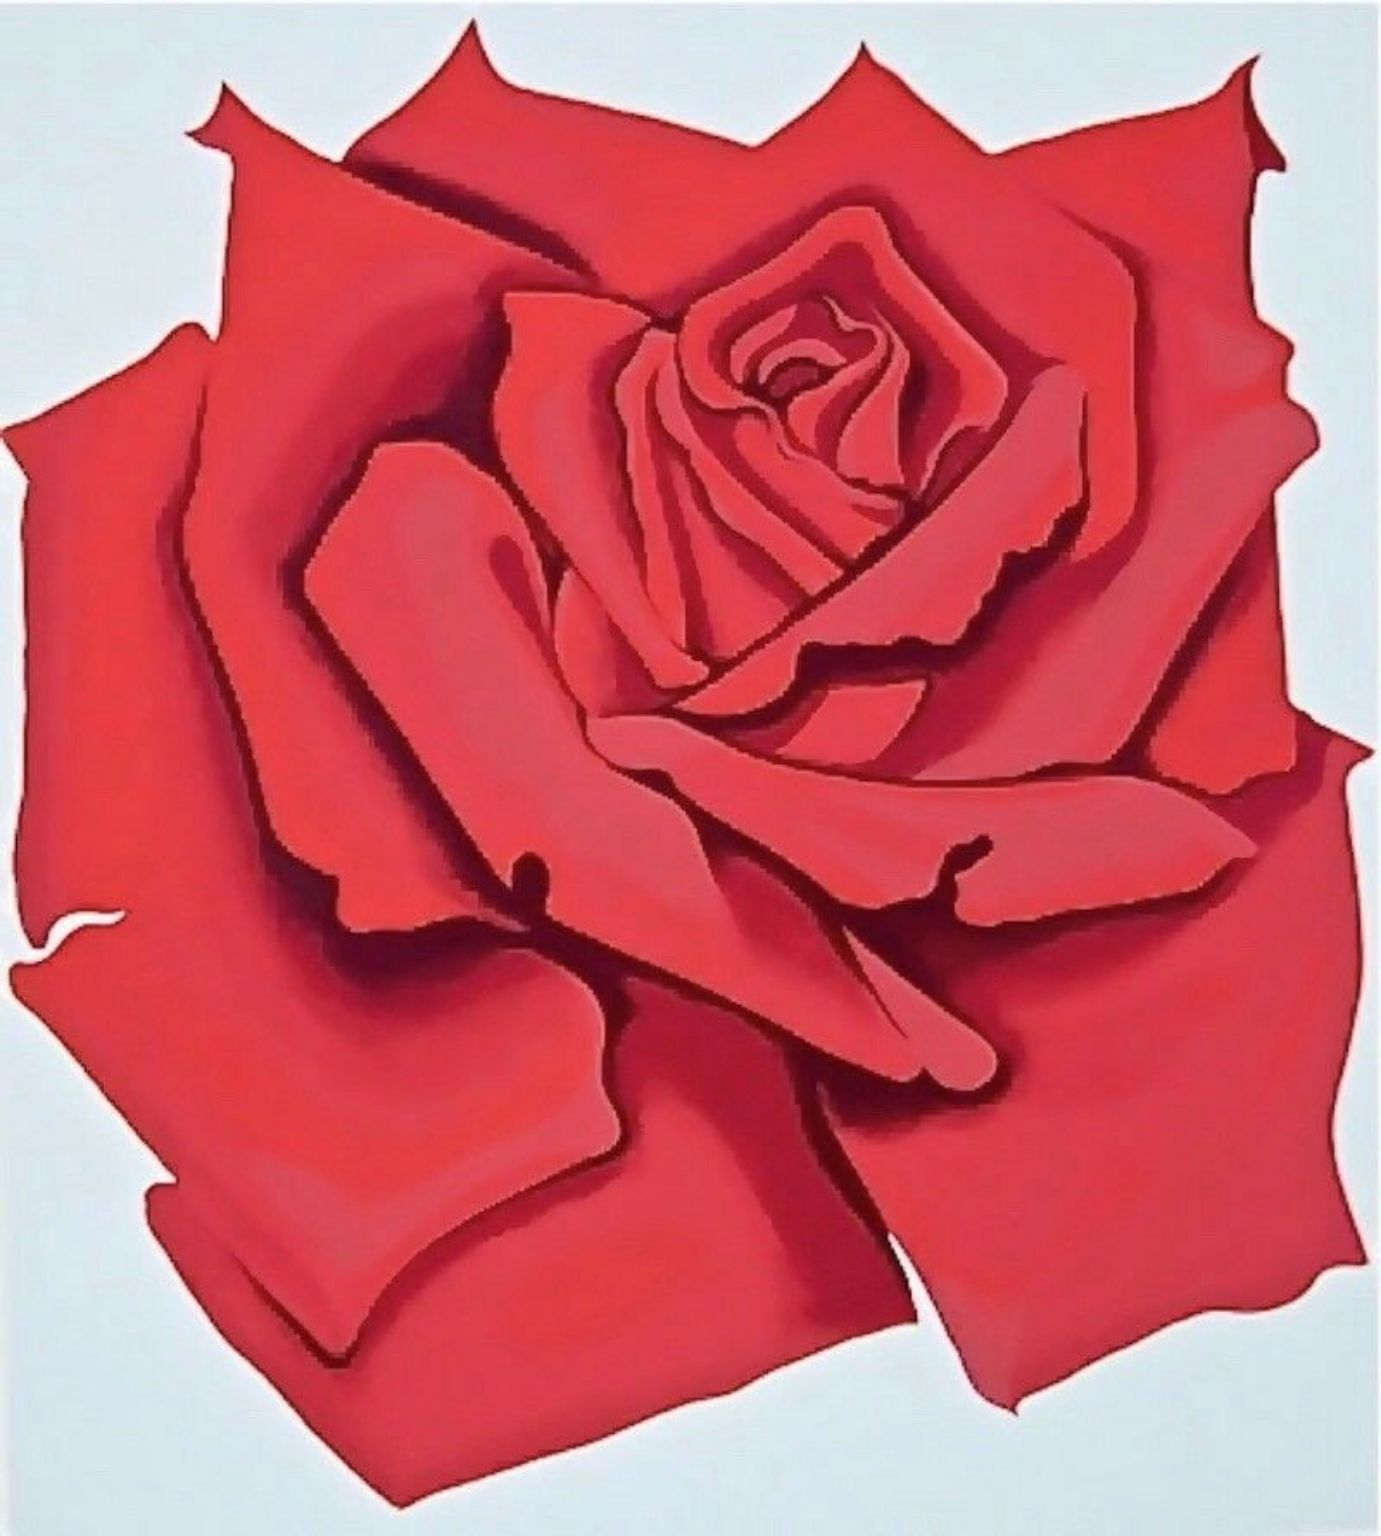 Red Rose, Limited Edition Silkscreen, Lowell Nesbitt